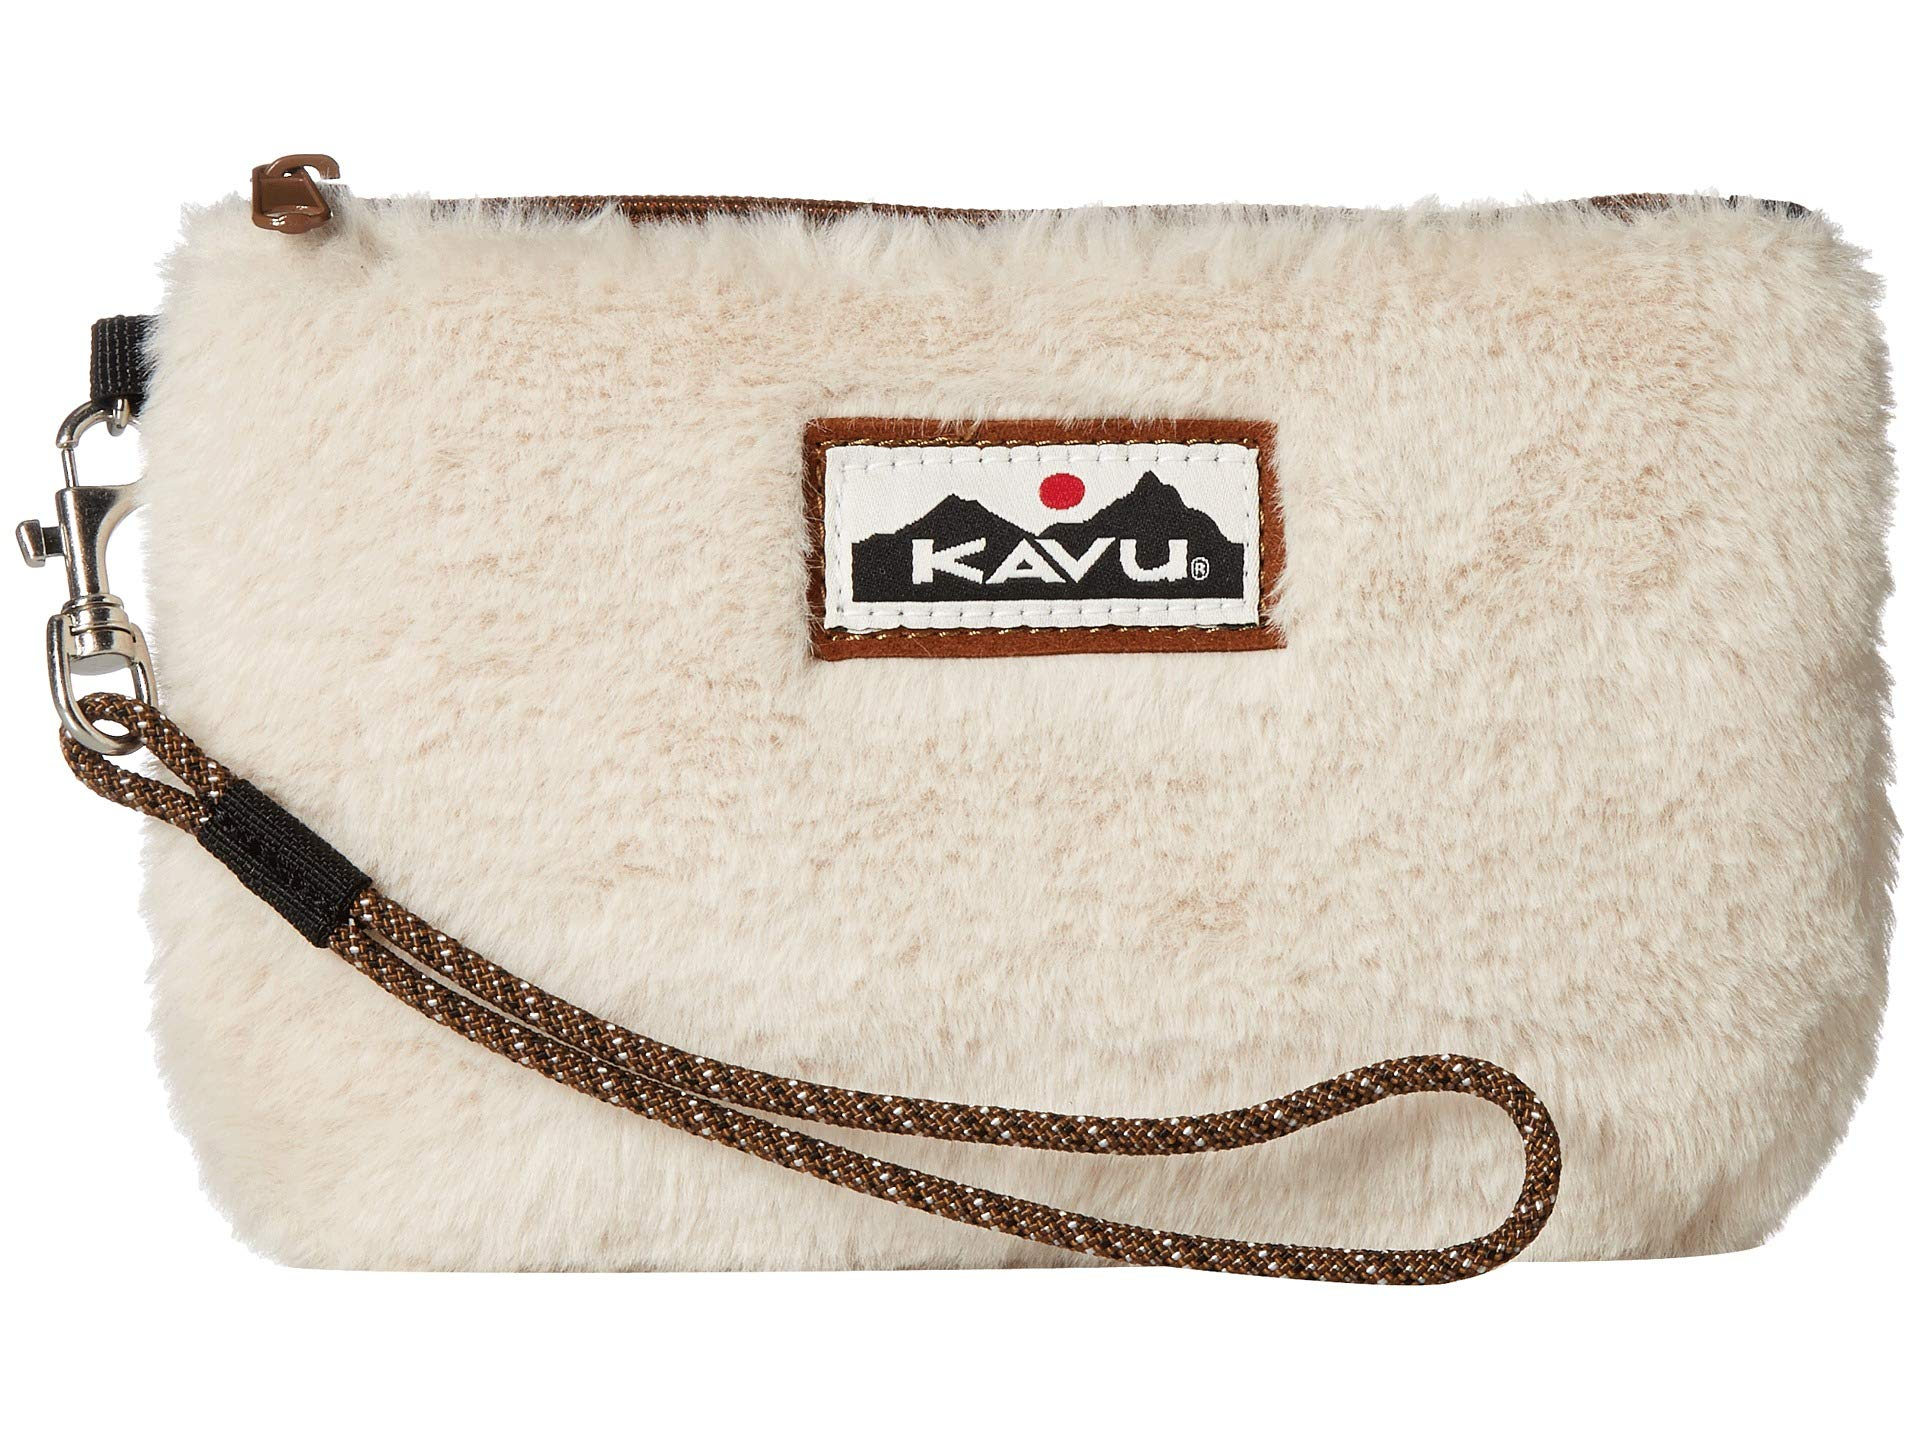 Kavu Clutch Plush Plush Natural Kavu Natural Plush Kavu Clutch Clutch 1wq5E5